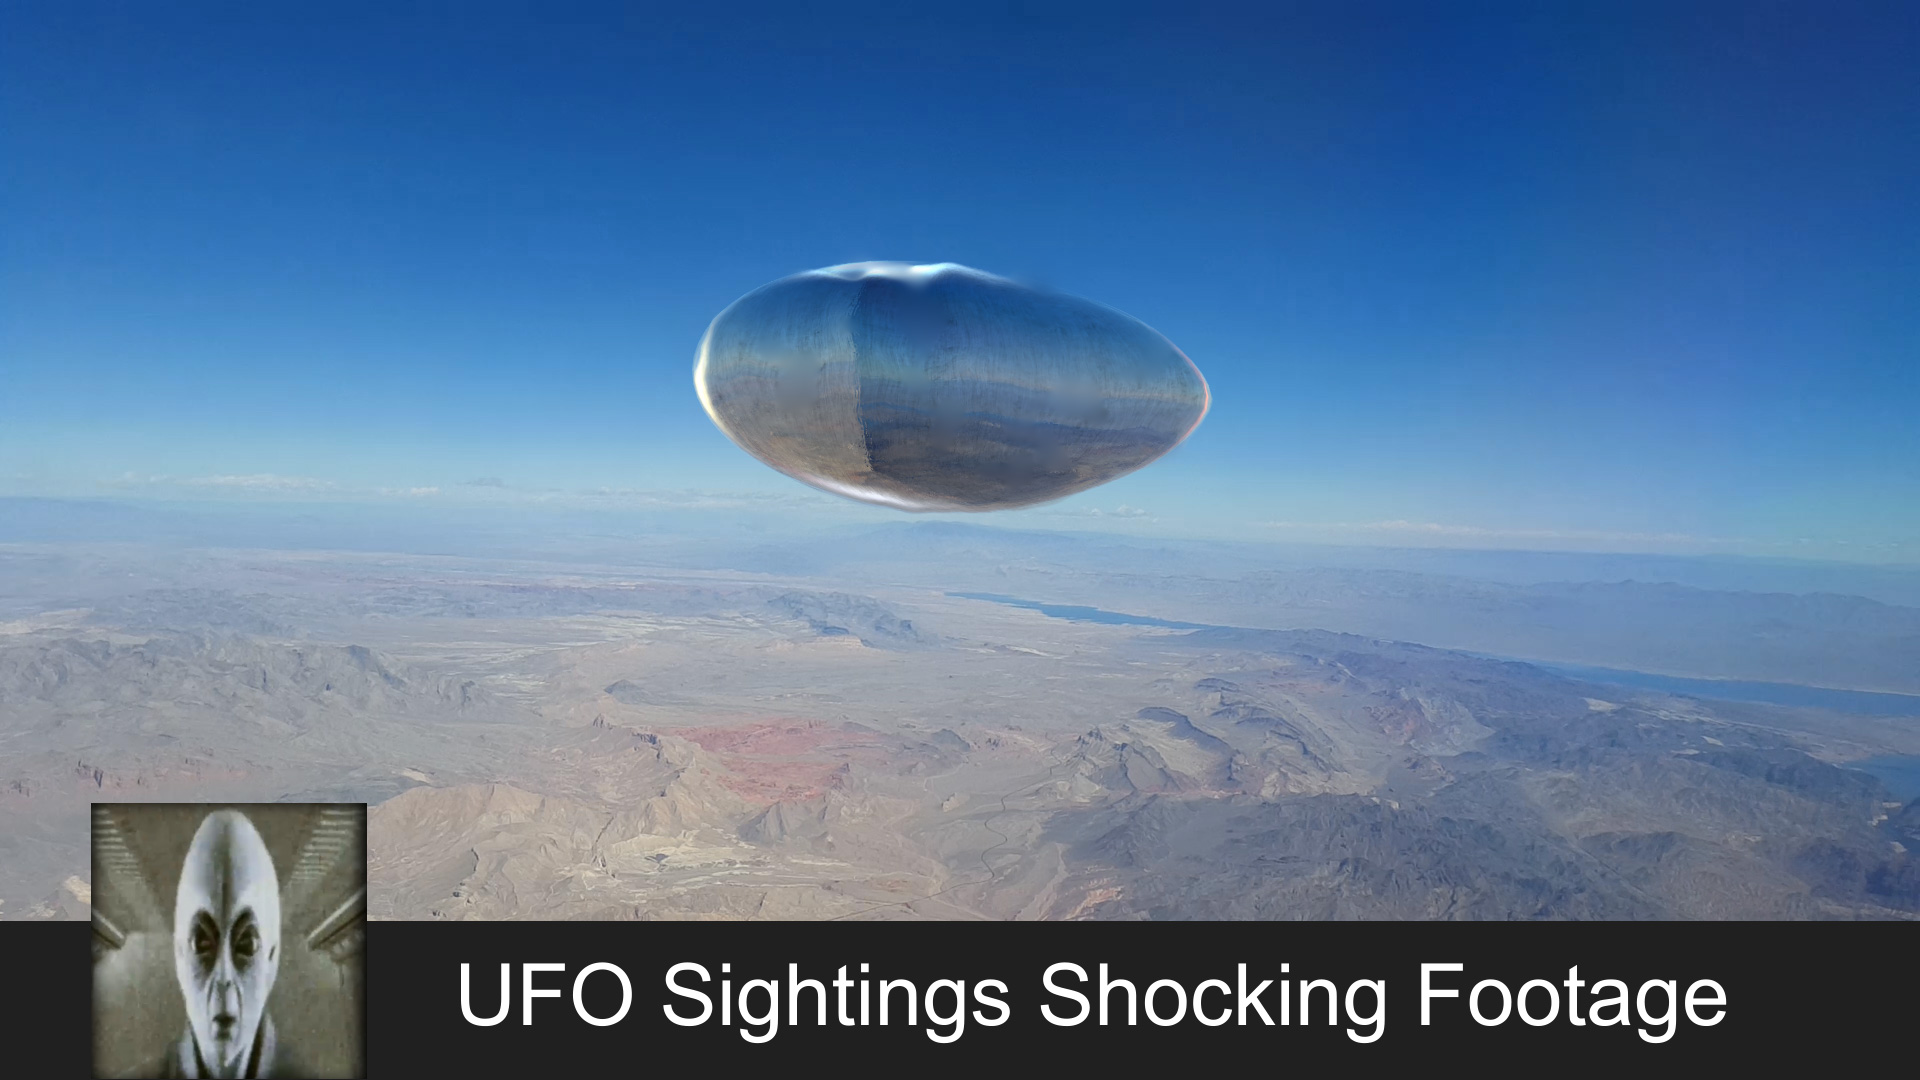 UFO Sightings Shocking Footage February 25th 2017 ...